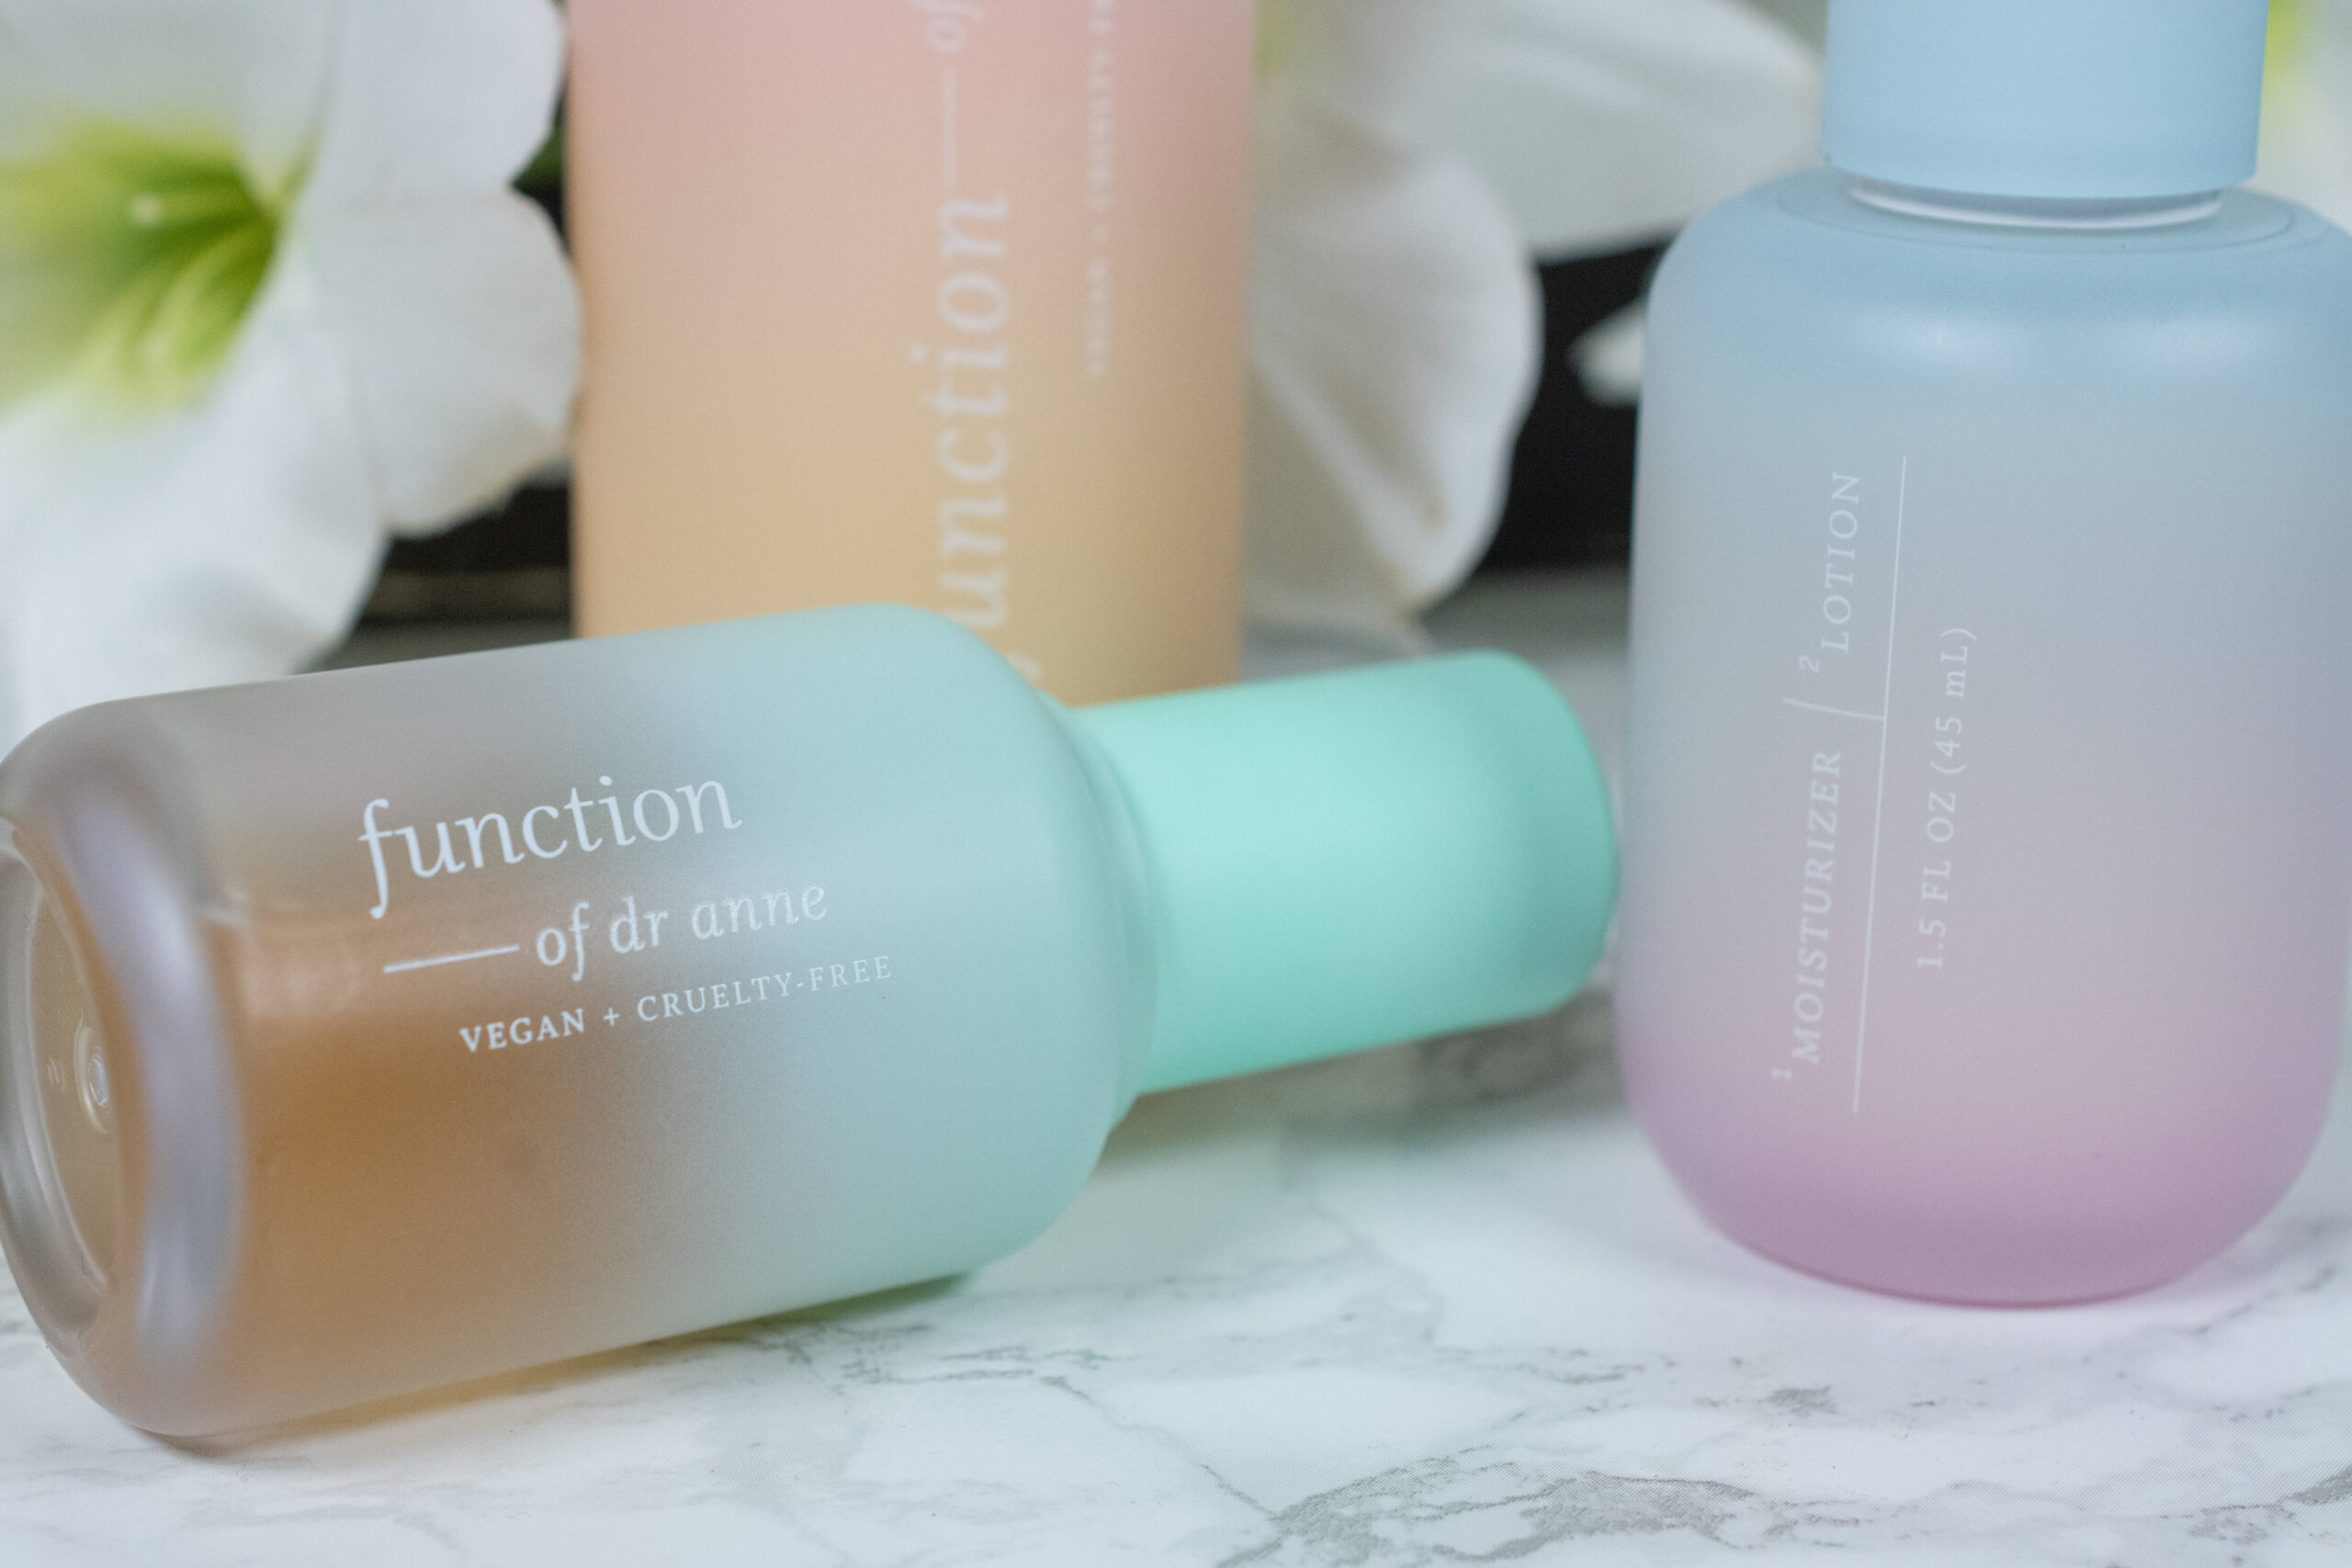 Function of Beauty Skincare